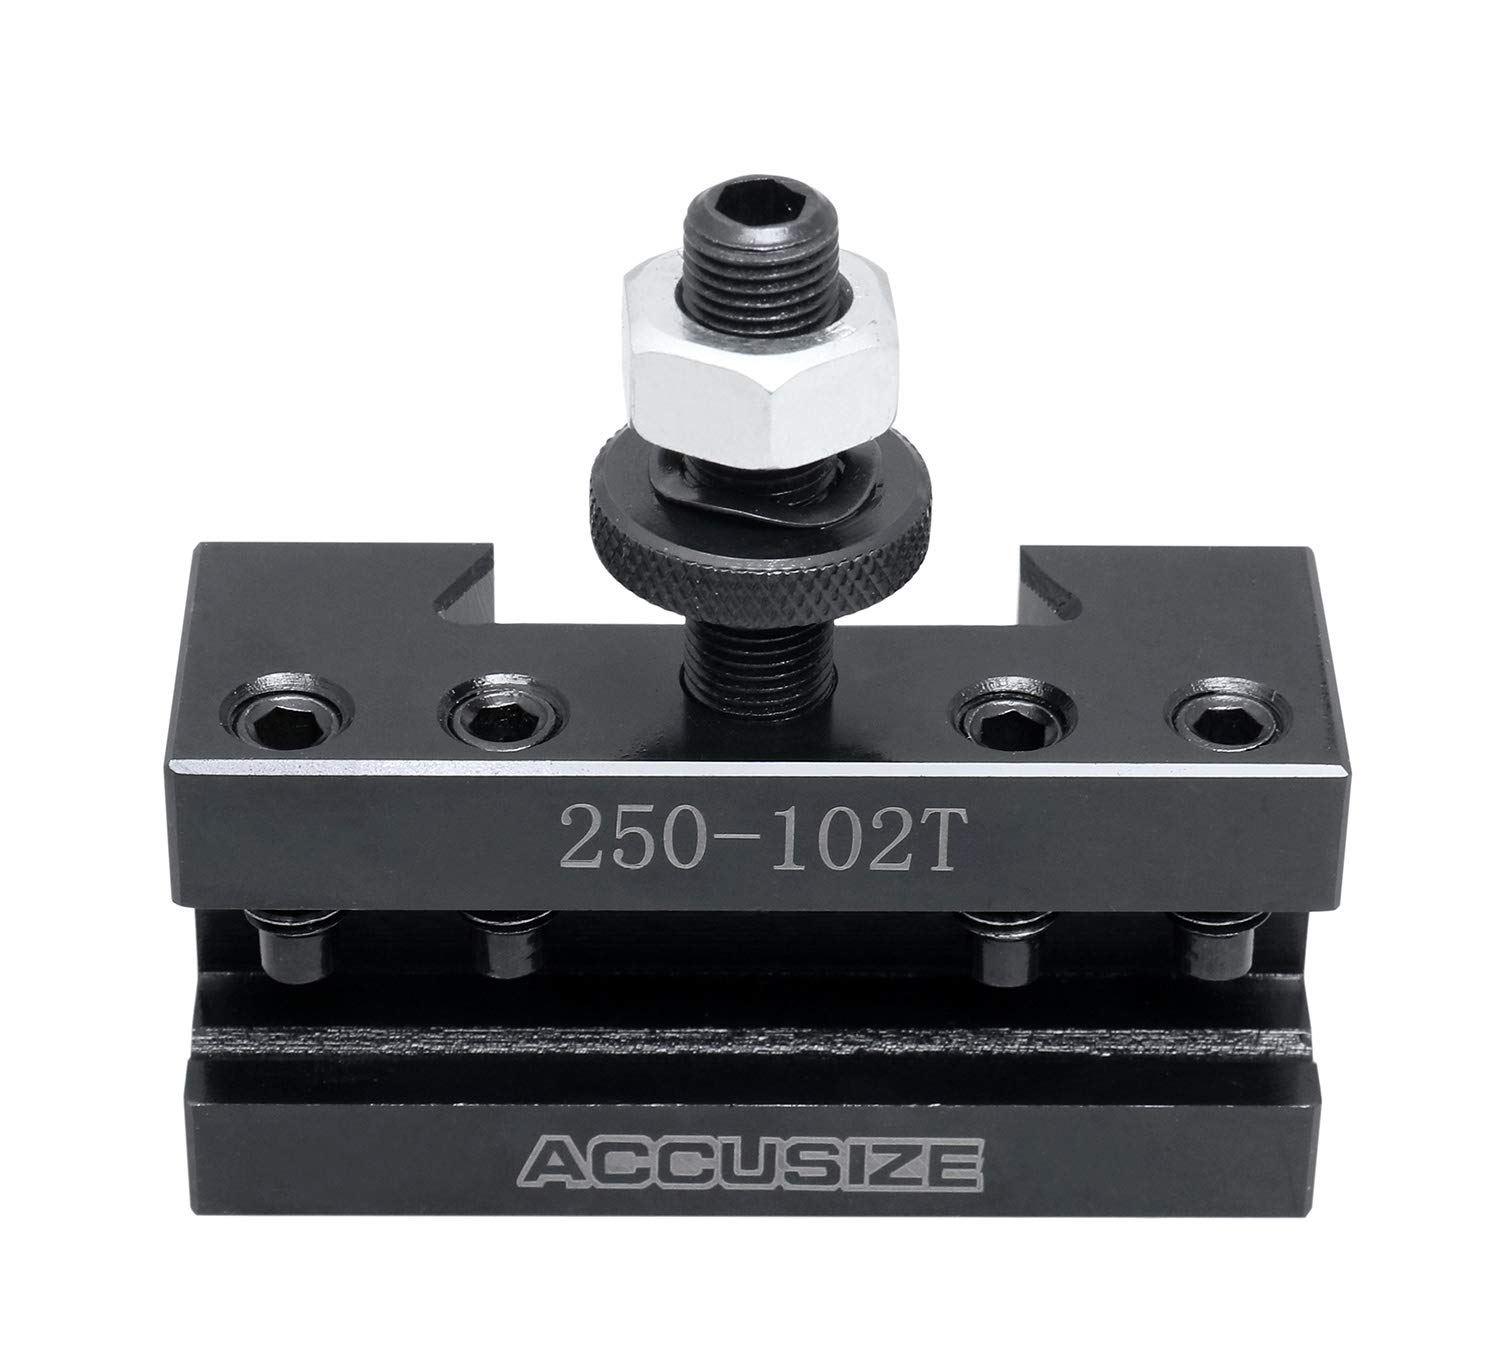 Style 2 Ex-Large Turning and Facing Holder for 3//4 Turning Tools Accusize Industrial Tools Style Bxa Boring 0250-0202T Quick Change Tool Holder